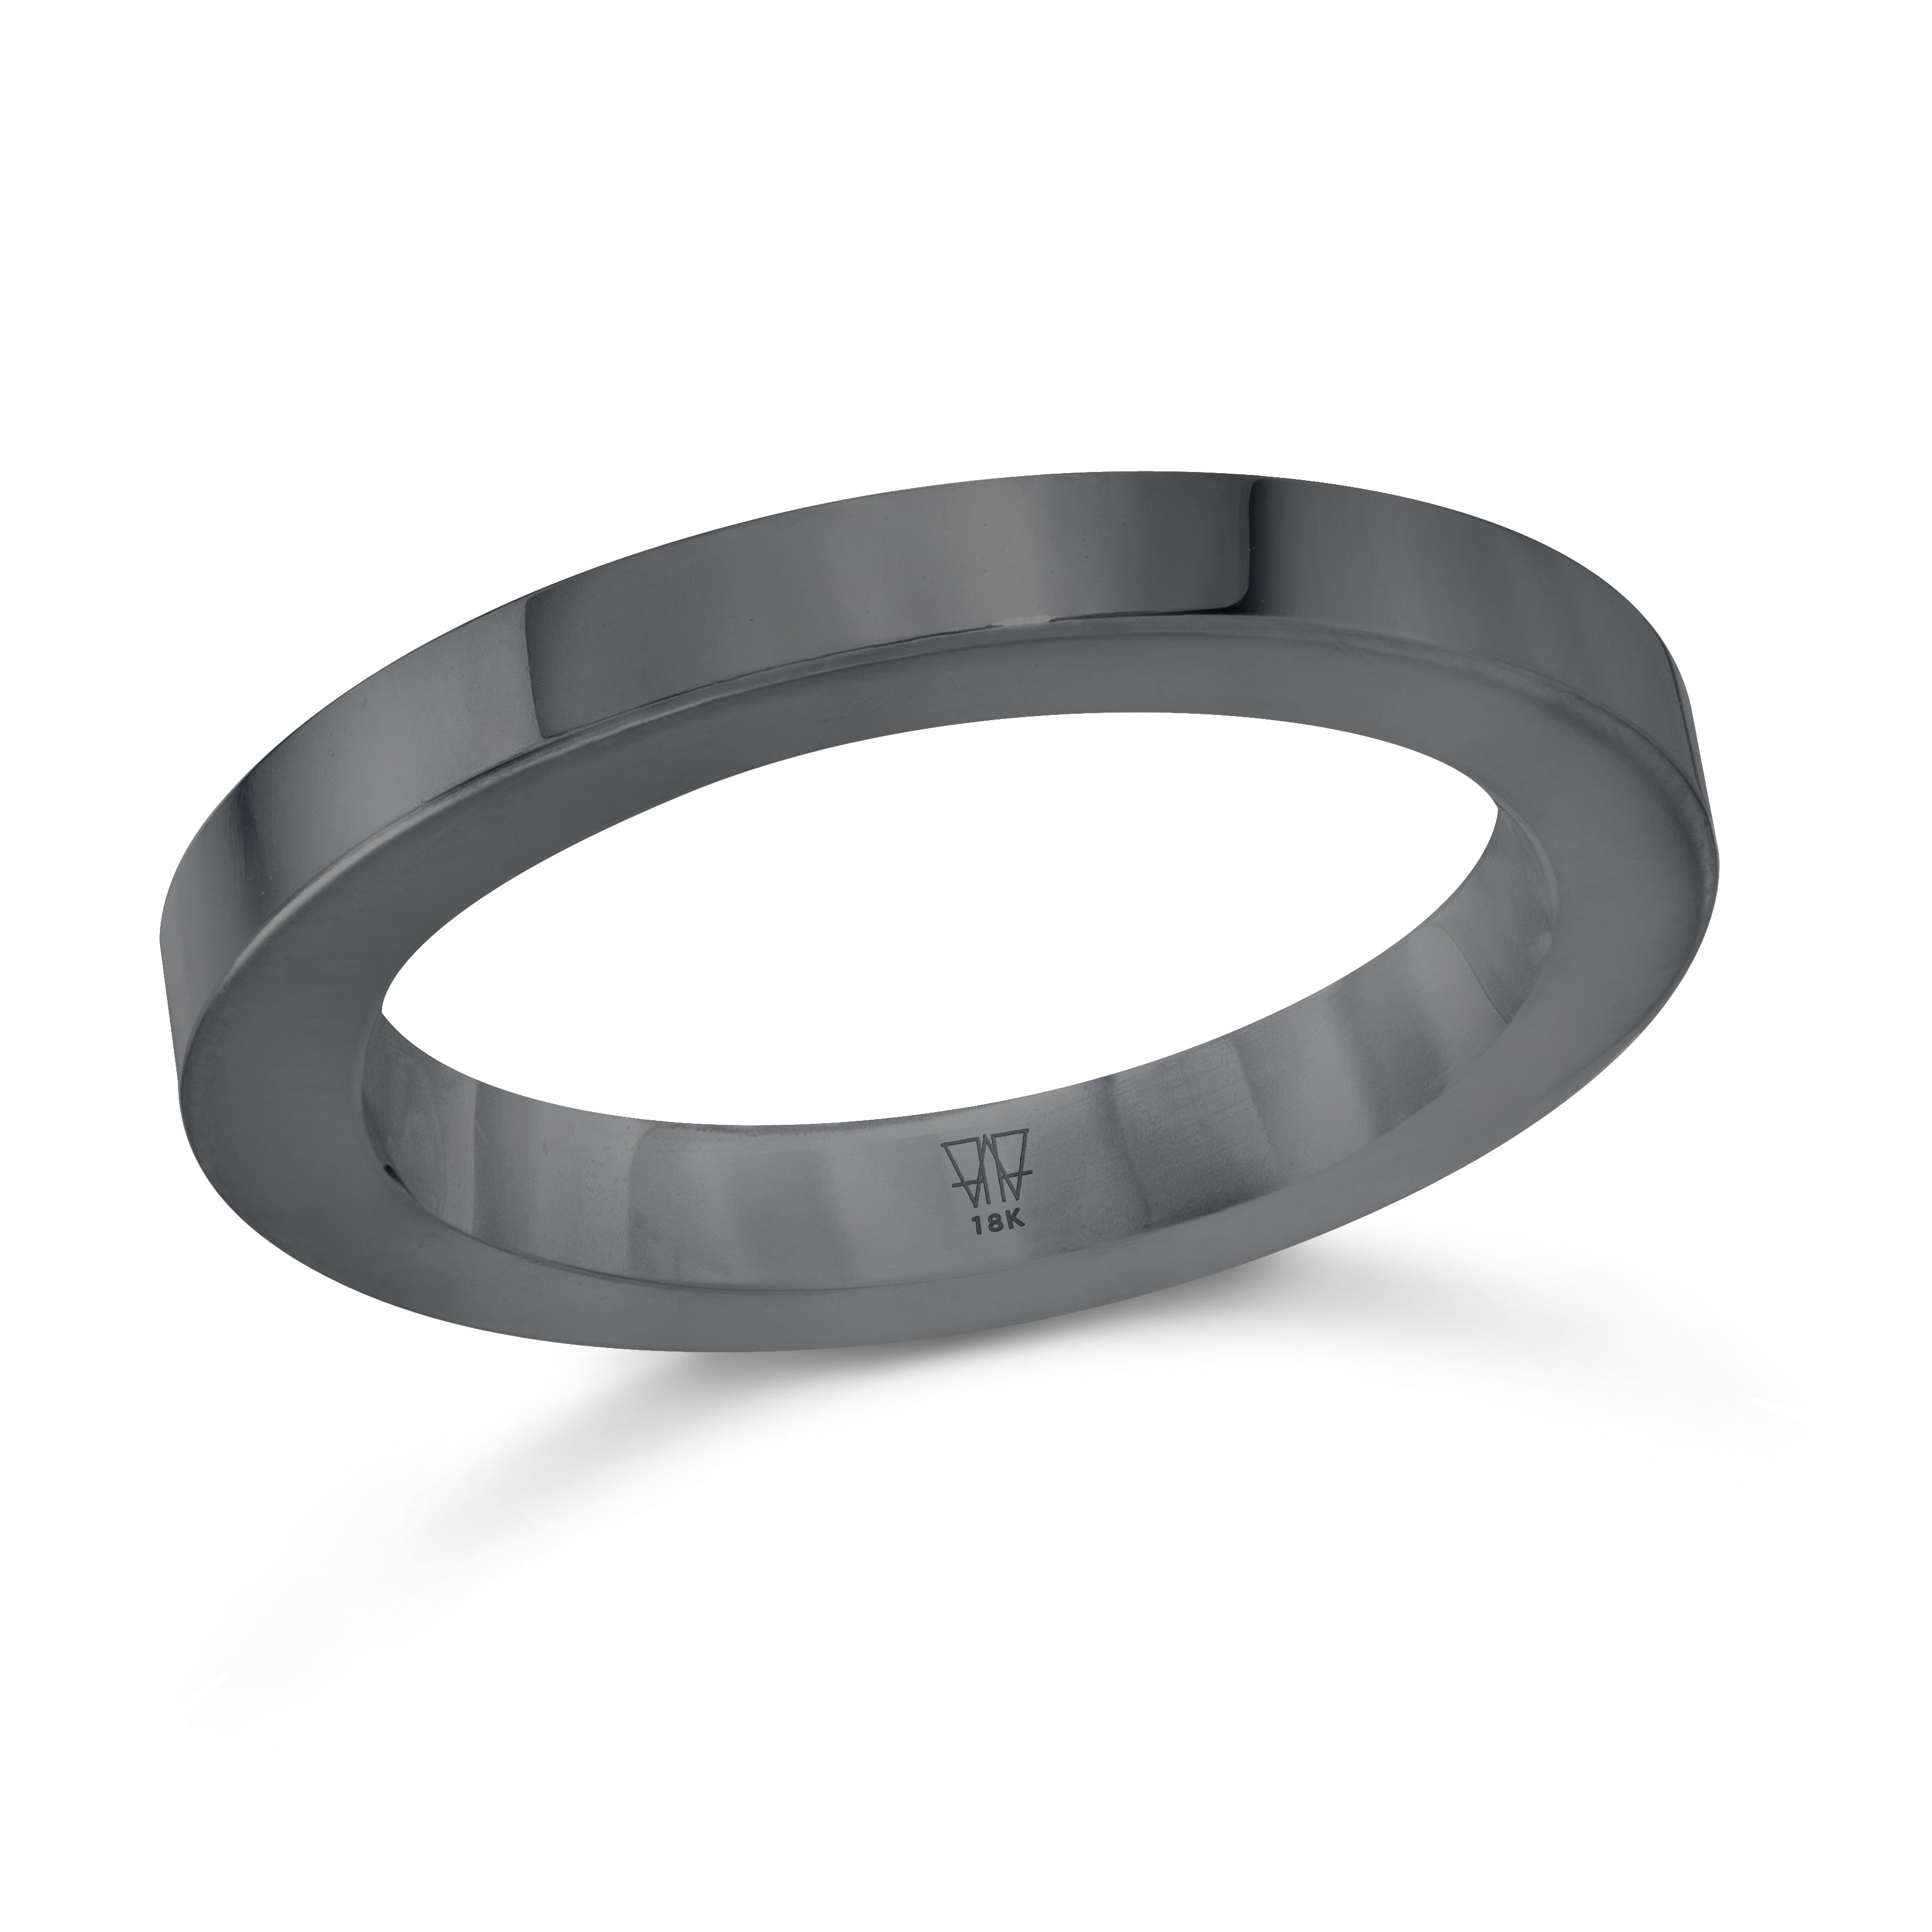 GRANT 18K White Gold and Black Rhodium 3mm Cubed Band